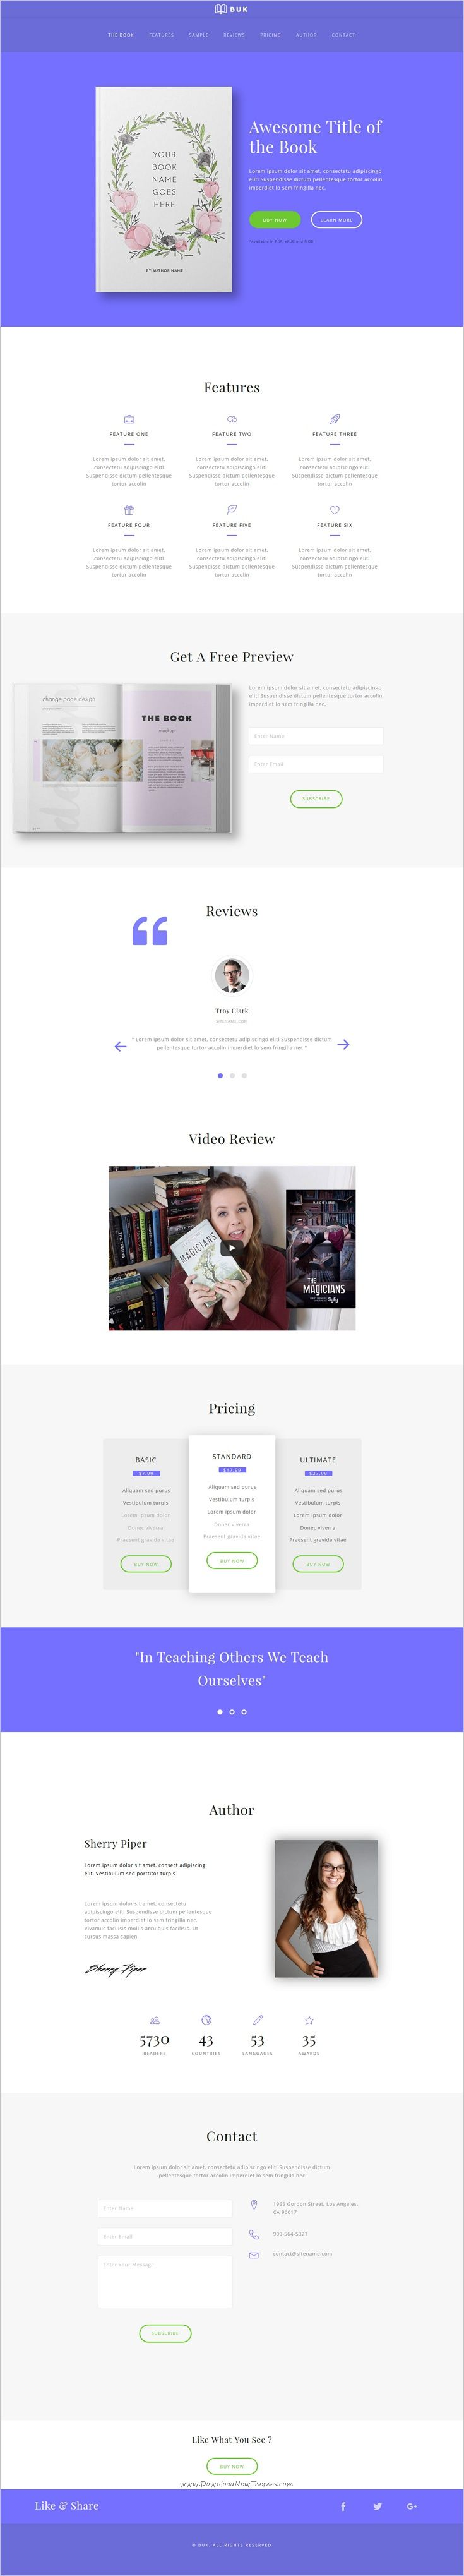 images about best adobe muse template collection on buk ebook landing page muse template